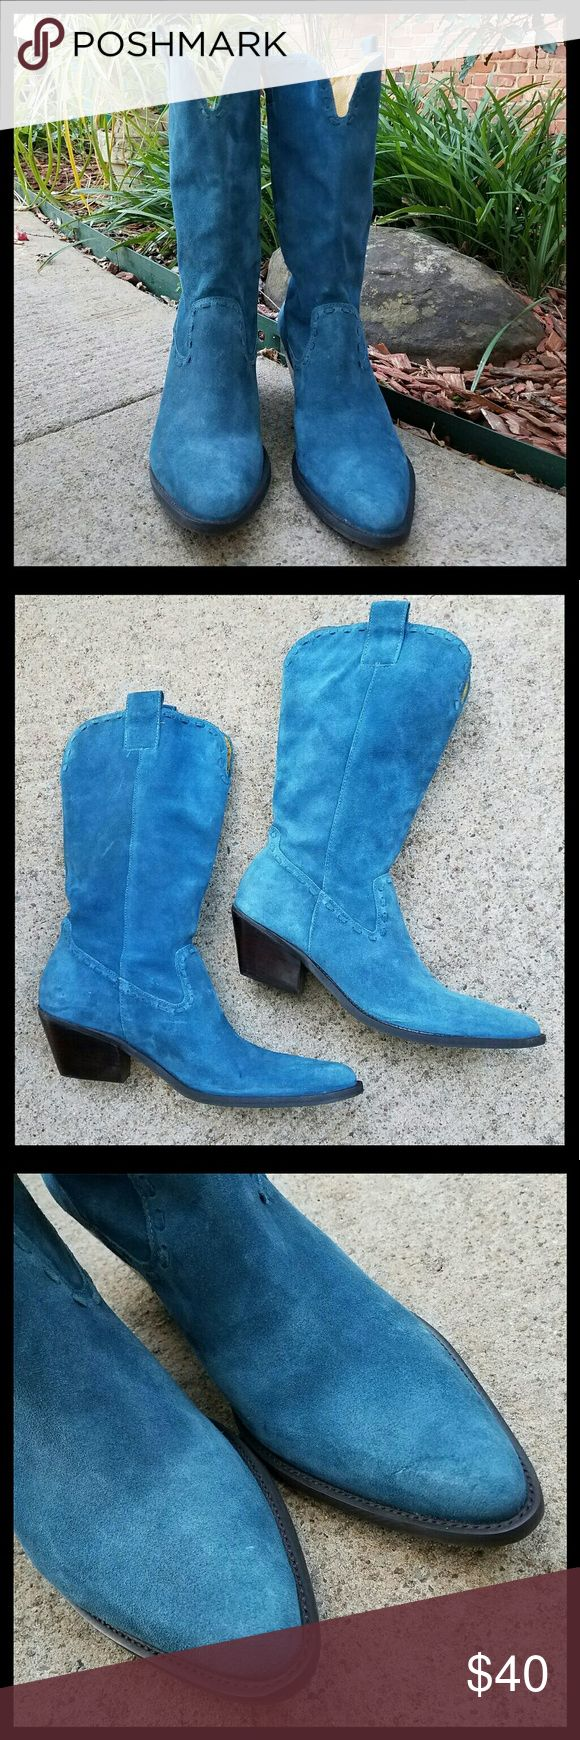 Gianni Bini Blue Suede Boots Blue suede cowboy boots.  Very little signs of light wear.  Great condition. Gianni Bini Shoes